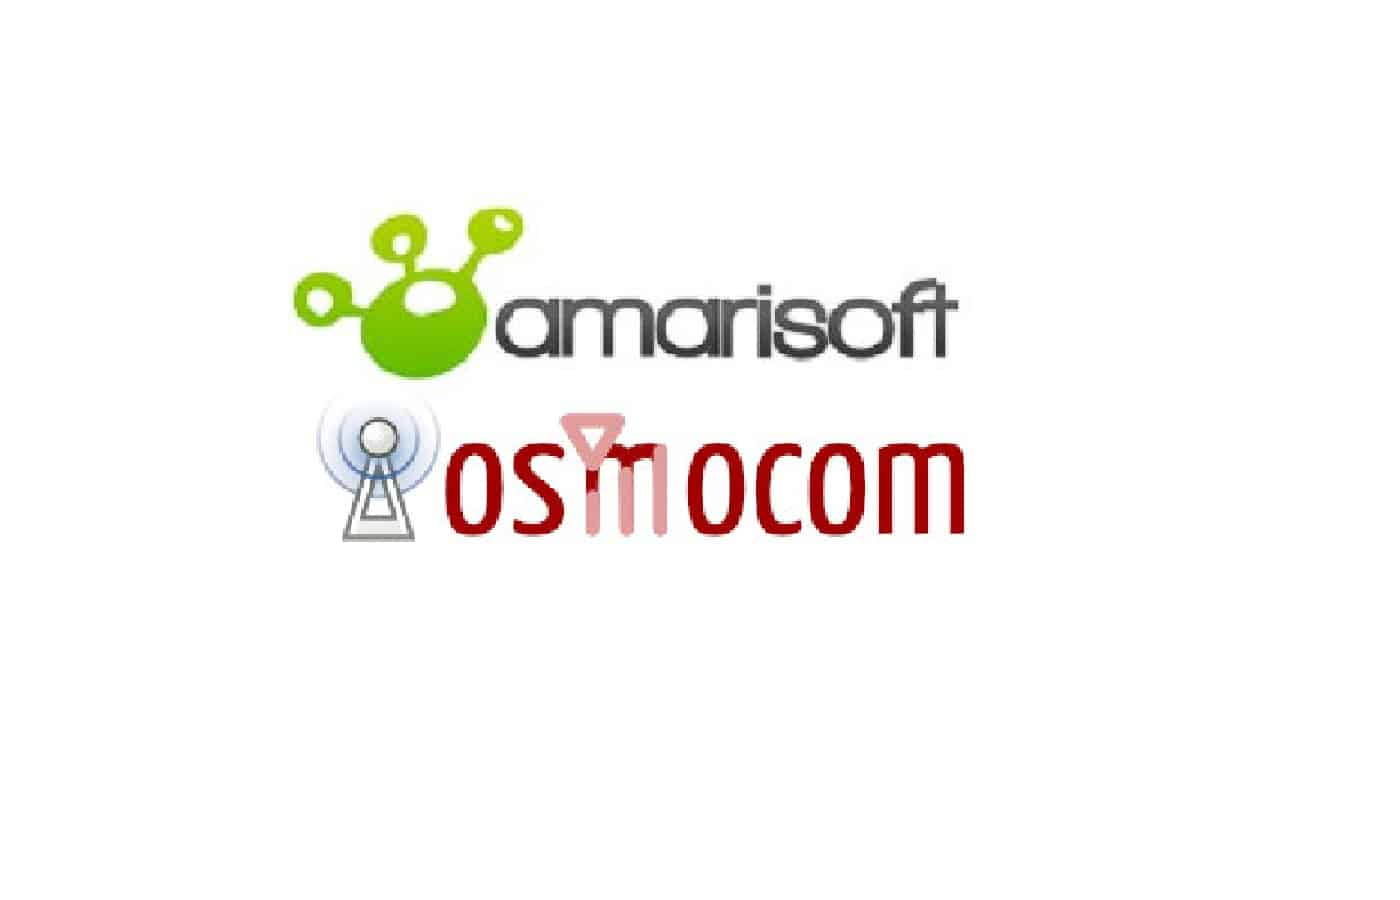 Osmocom CNI successfully integrated with Amarisoft eNodeB and EPC, interoperating with CSFB and SMS-over-SGs